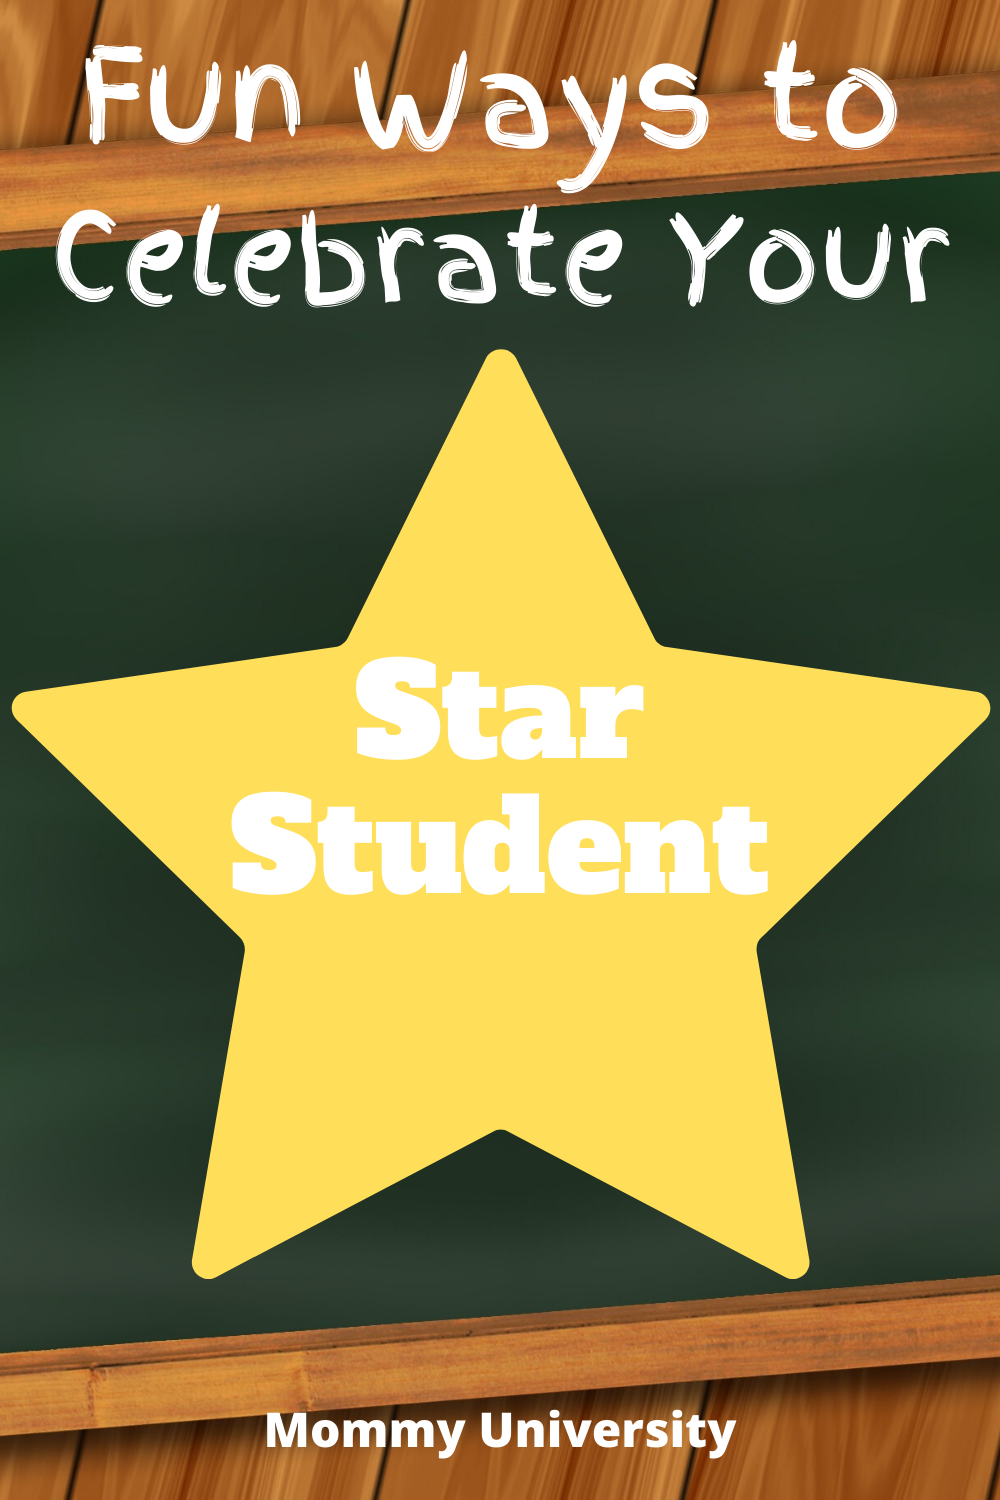 Fun Ways to Celebrate Your Star Student